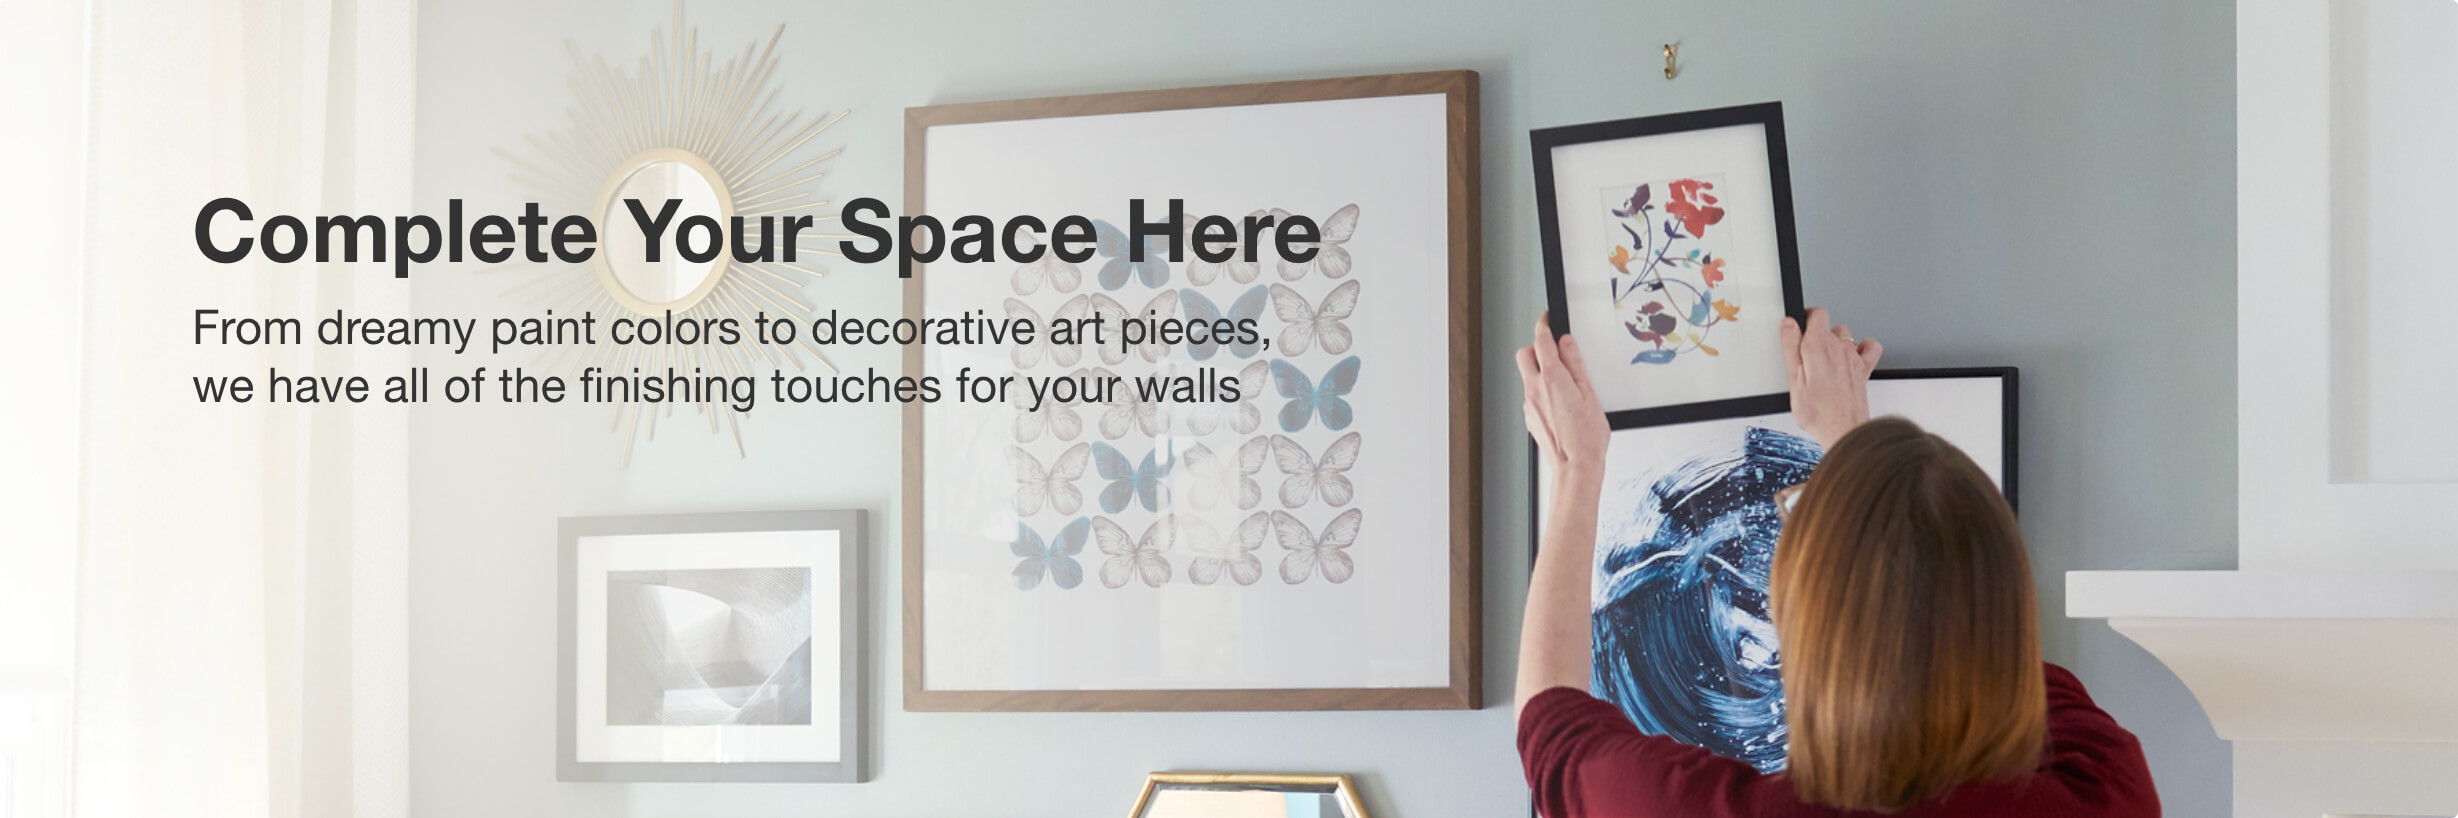 Complete Your Space Here